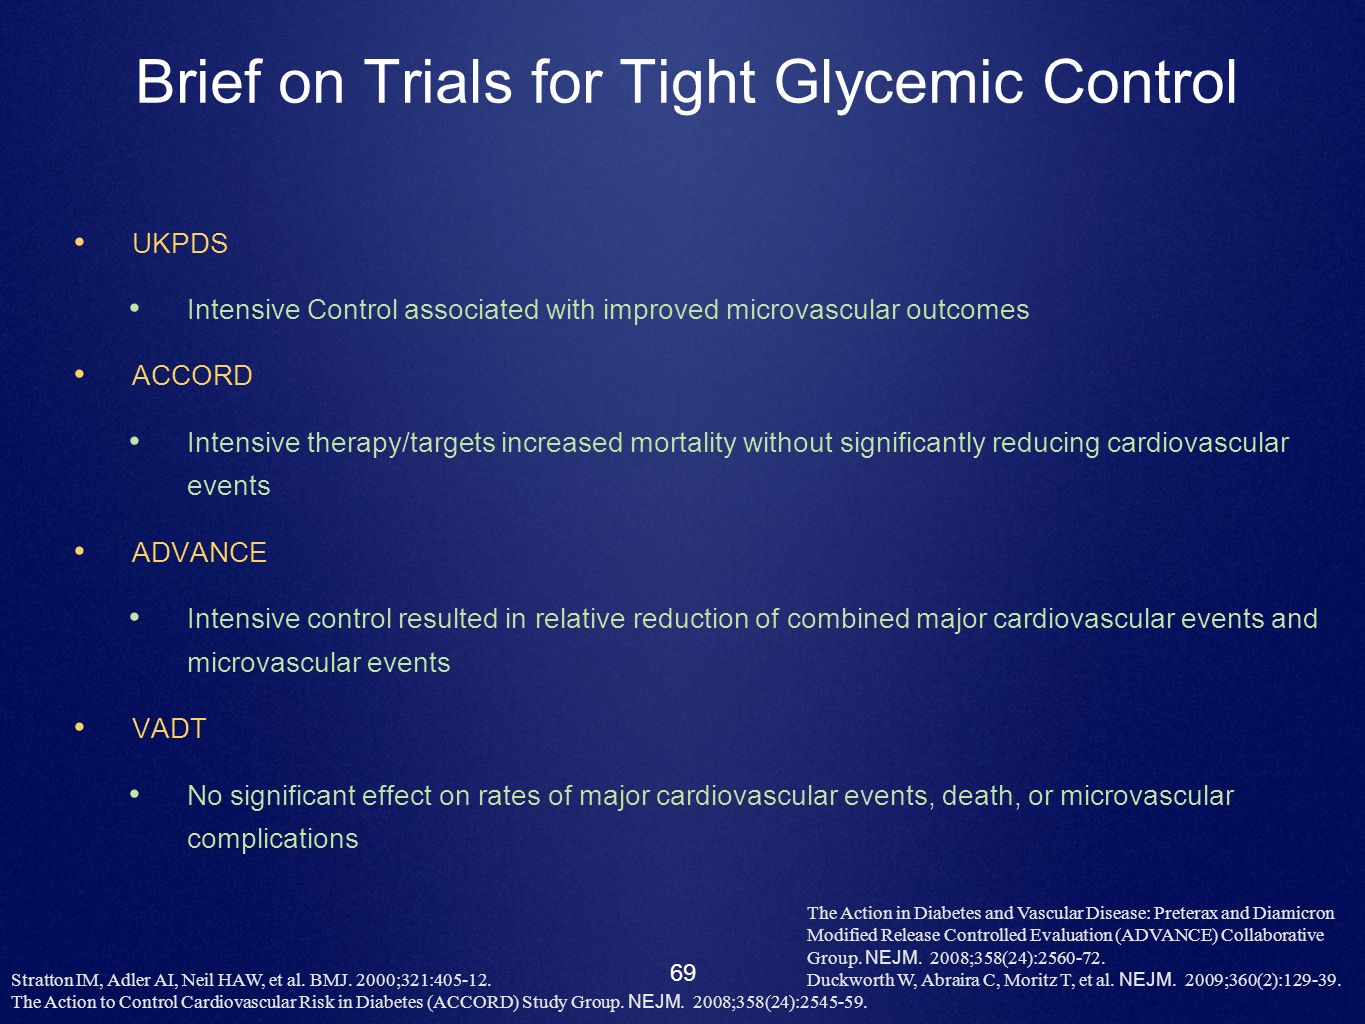 Brief on Trials for Tight Glycemic Control